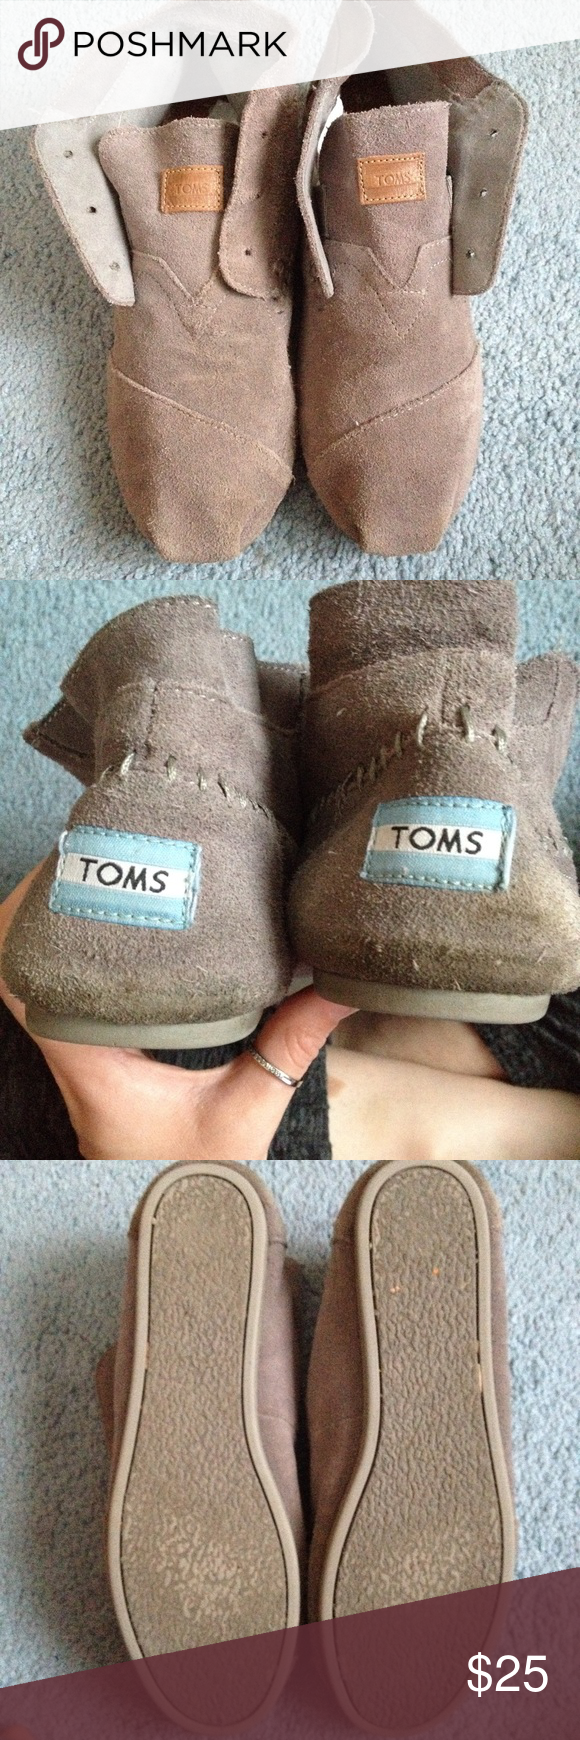 Womens toms, Lace toms, Gray toms